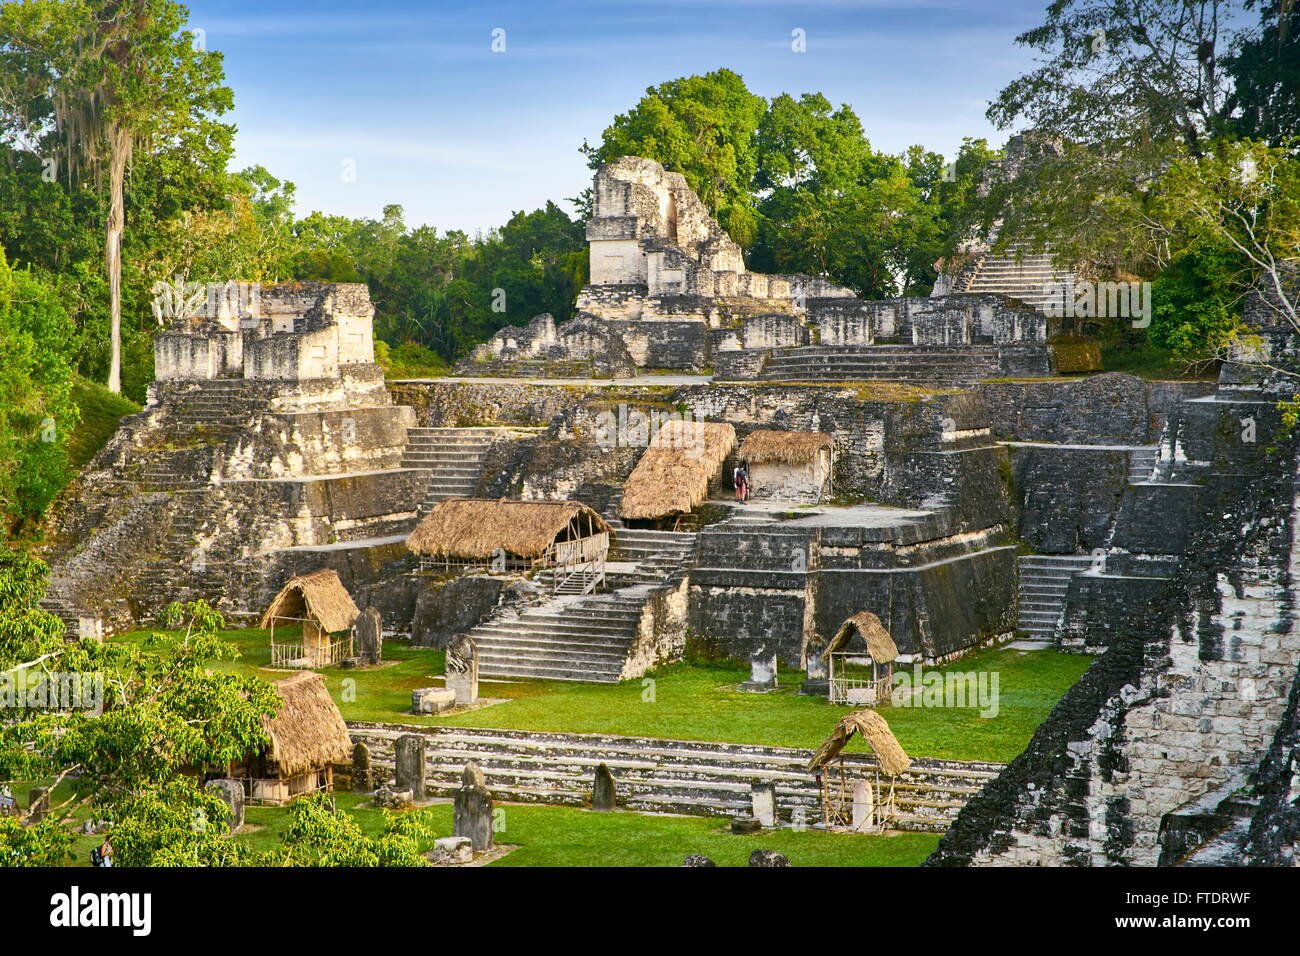 Ancient Maya Ruins, Tikal National Park, Guatemala, UNESCO - Stock Image